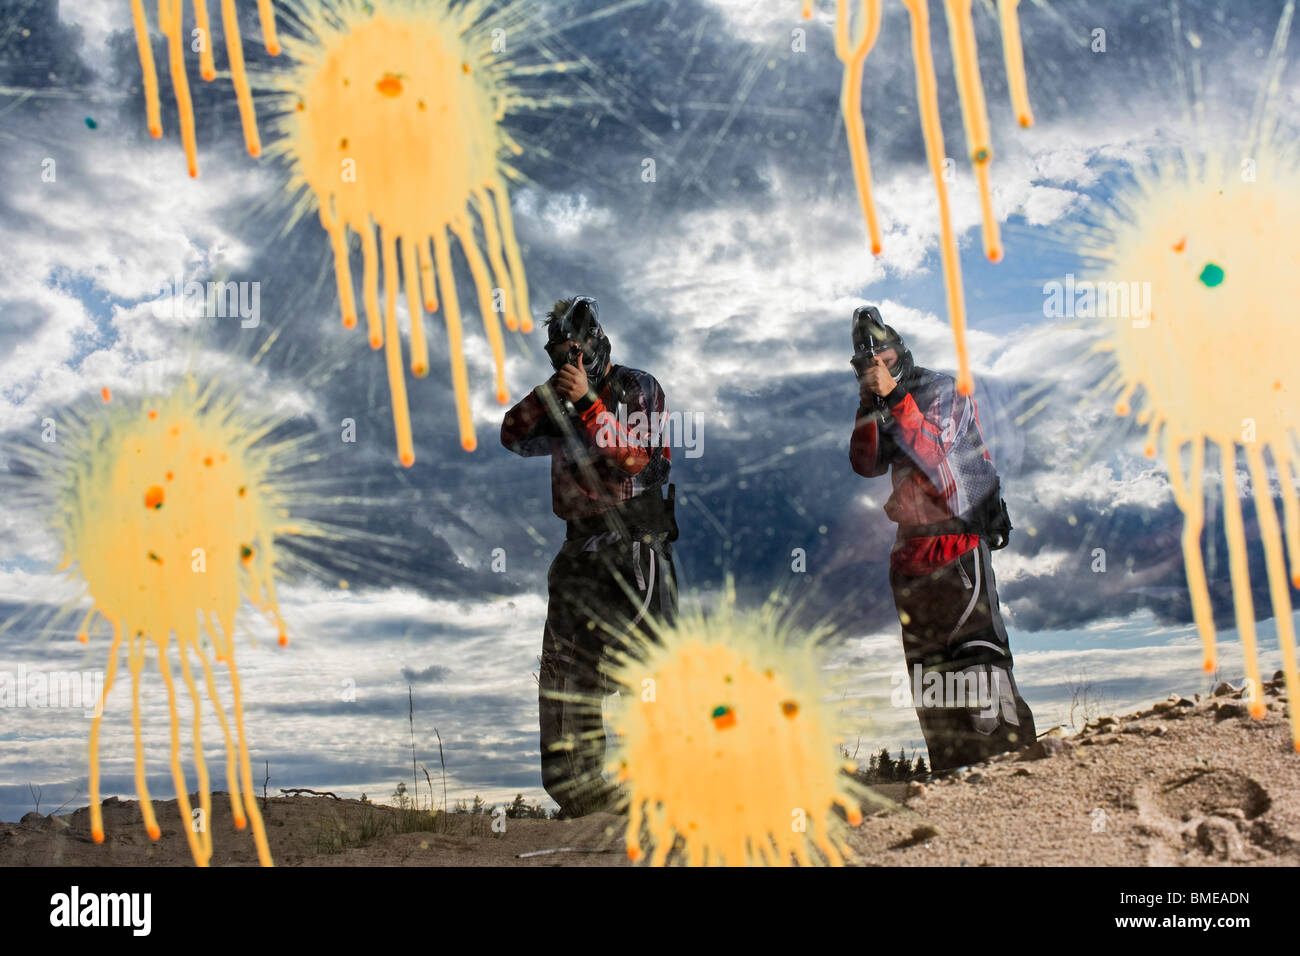 Men playing paintball, Sweden. Stock Foto